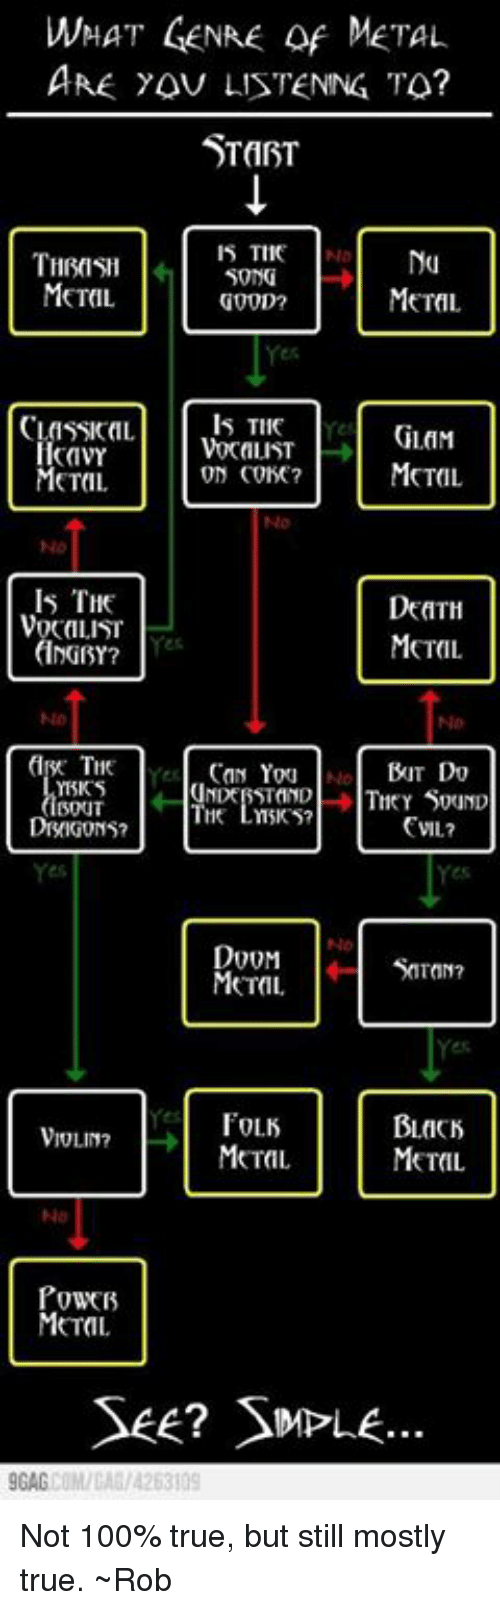 WHAT GENRE of METAL ARE You LISTENING TO? START 15 T110 THRASH SONG